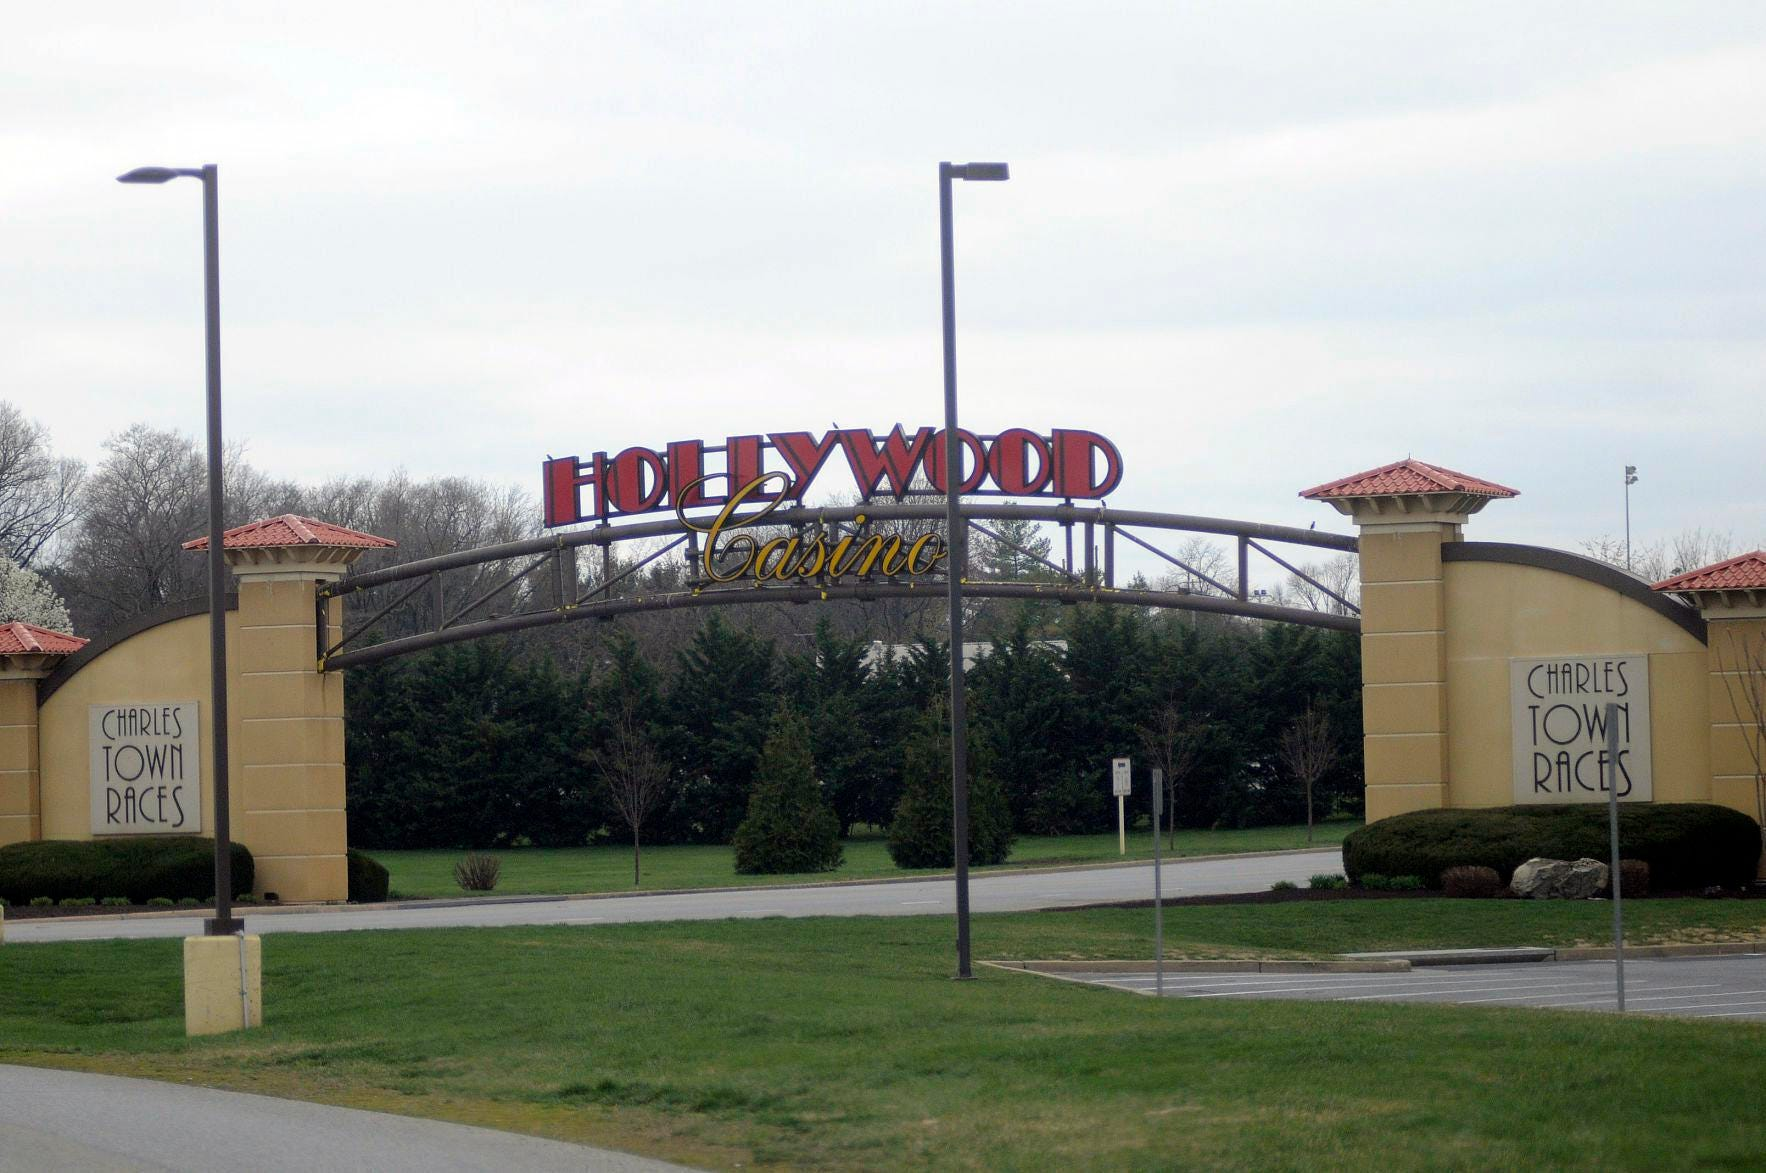 A vaccine clinic at the Hollywood Casino in Charles Town, W.Va., welcomes people from outside the state to get their COVID-19 shots as demand declines among residents.